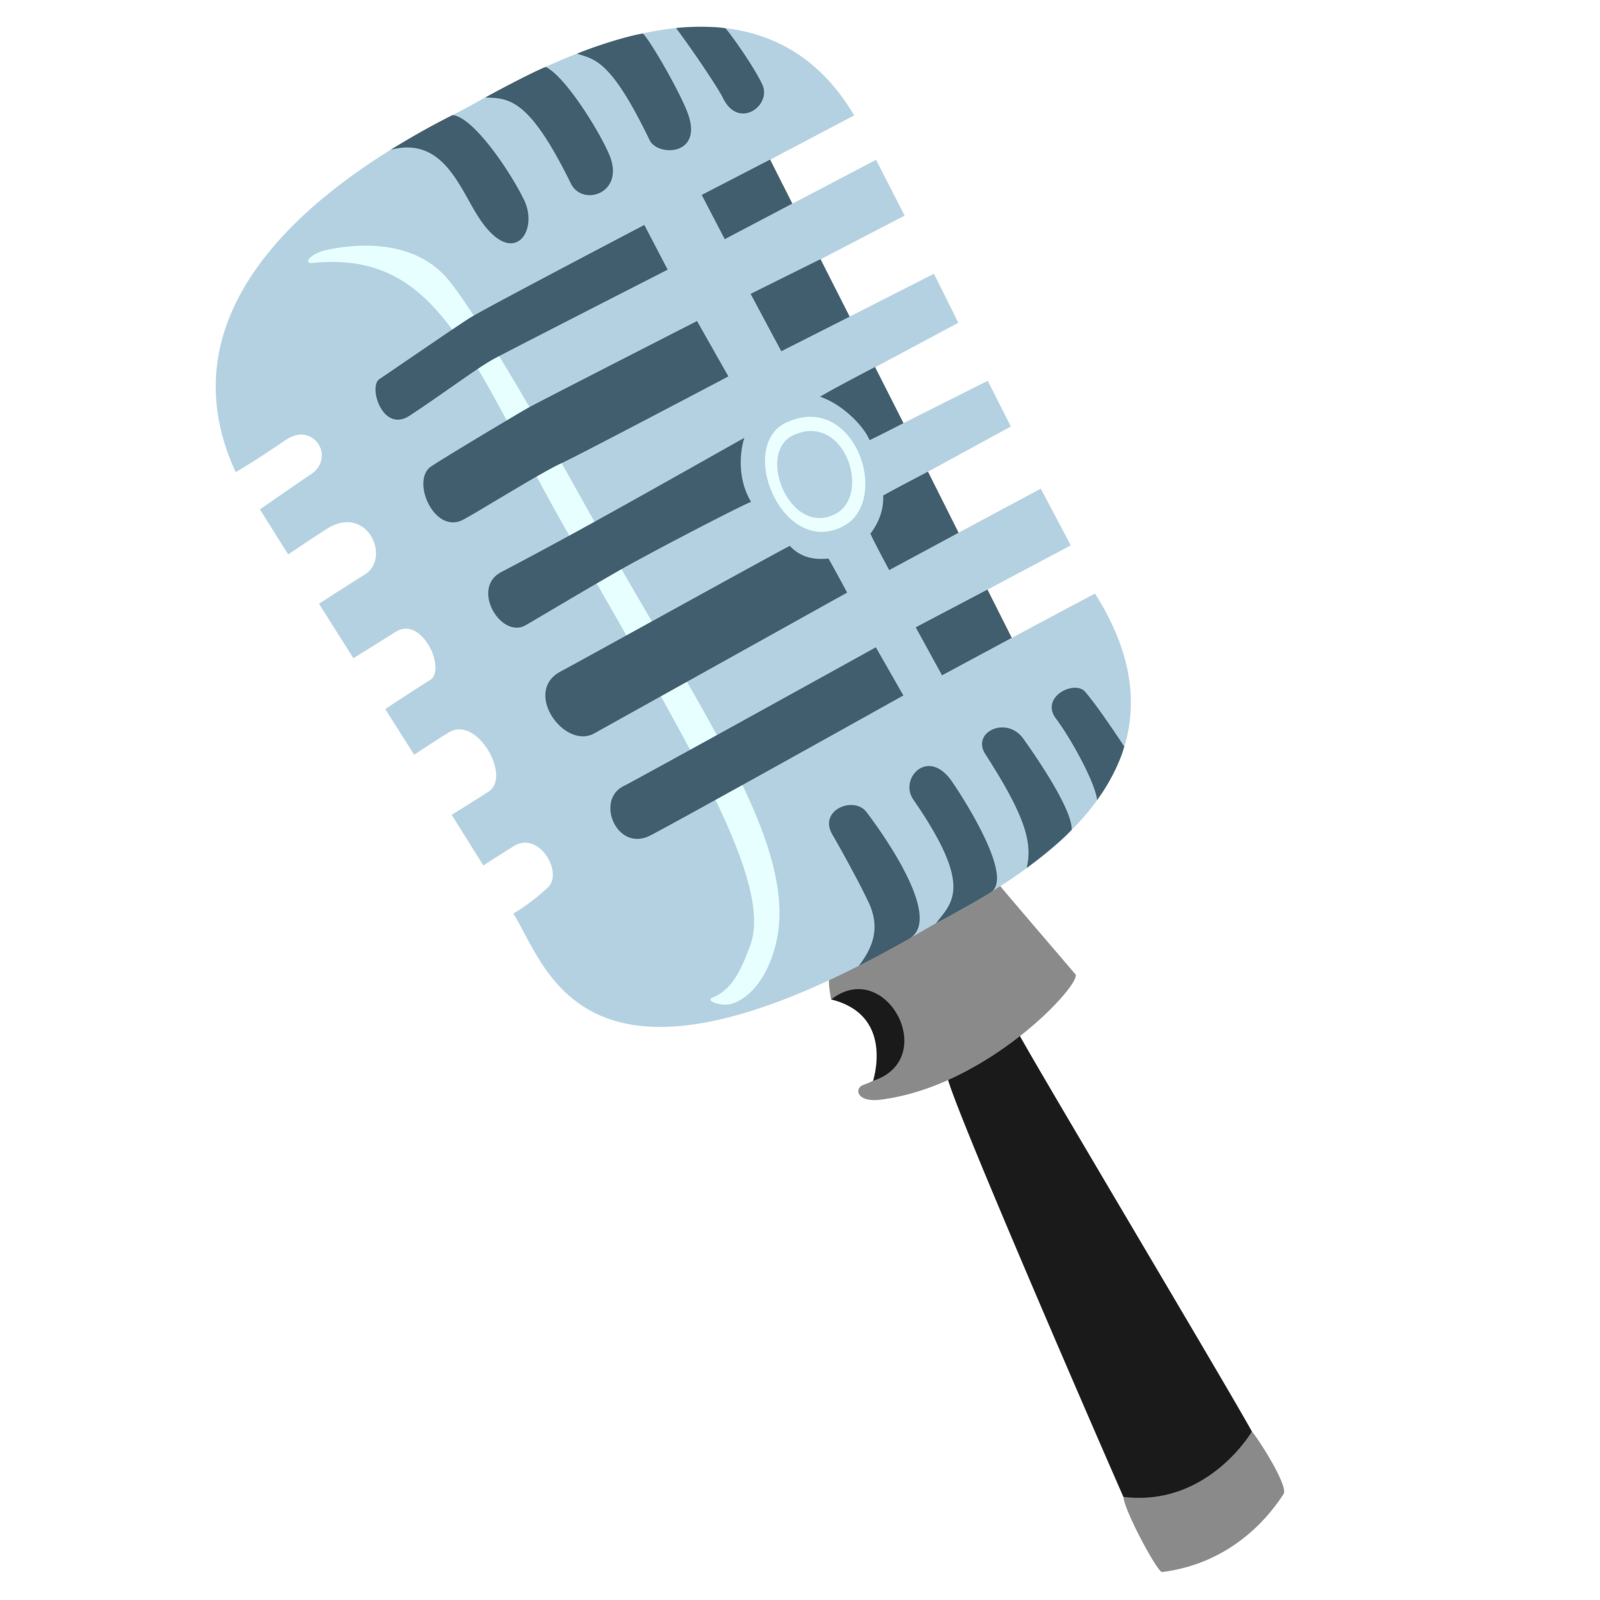 image transparent Microphone clipart. Simple free on dumielauxepices.